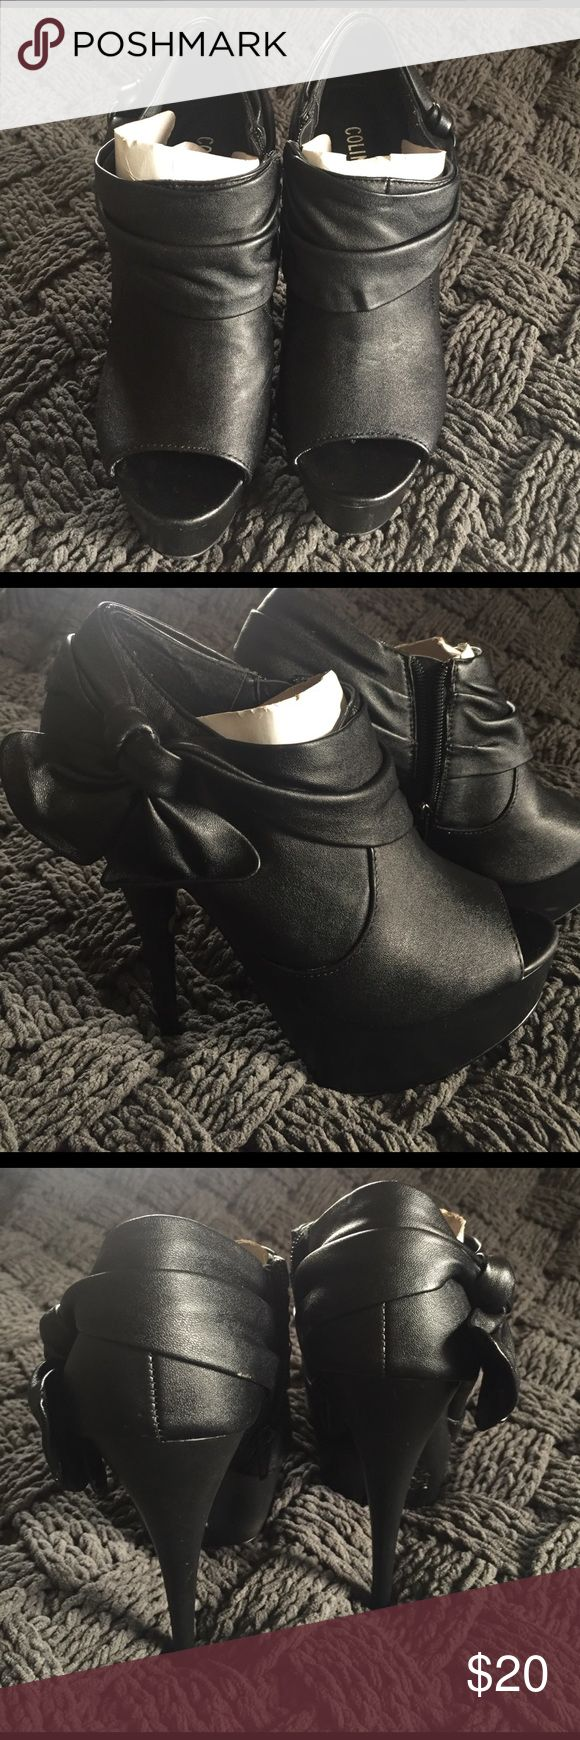 Black Colin Stuart Booties The cutest black Colin Stuart booties with bows on the side! Perfect for any night out! Dress them up or dress them down. Ok good condition. Colin Stuart Shoes Ankle Boots & Booties